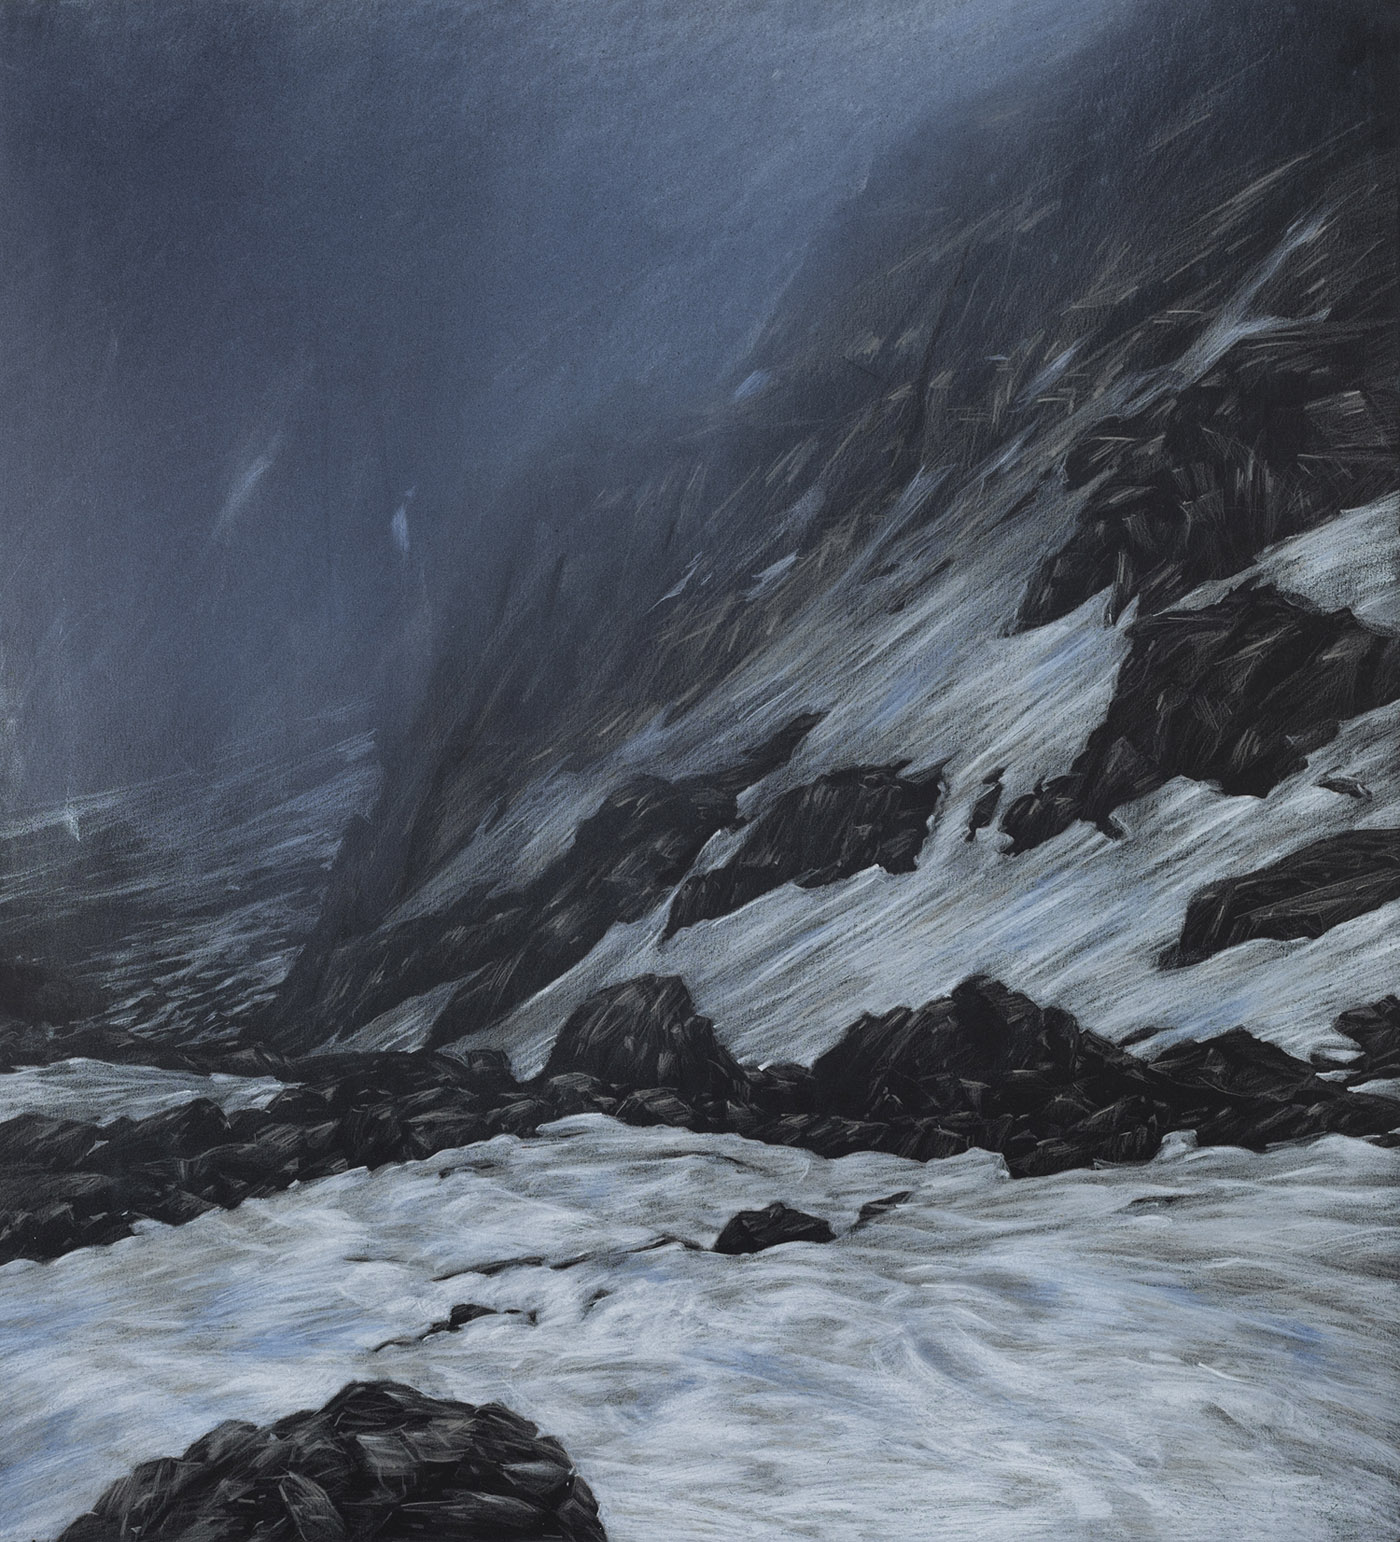 Summit, coloured pencil and pastel, 62 x 57 cm, 2012 (photo by Dean Butters)